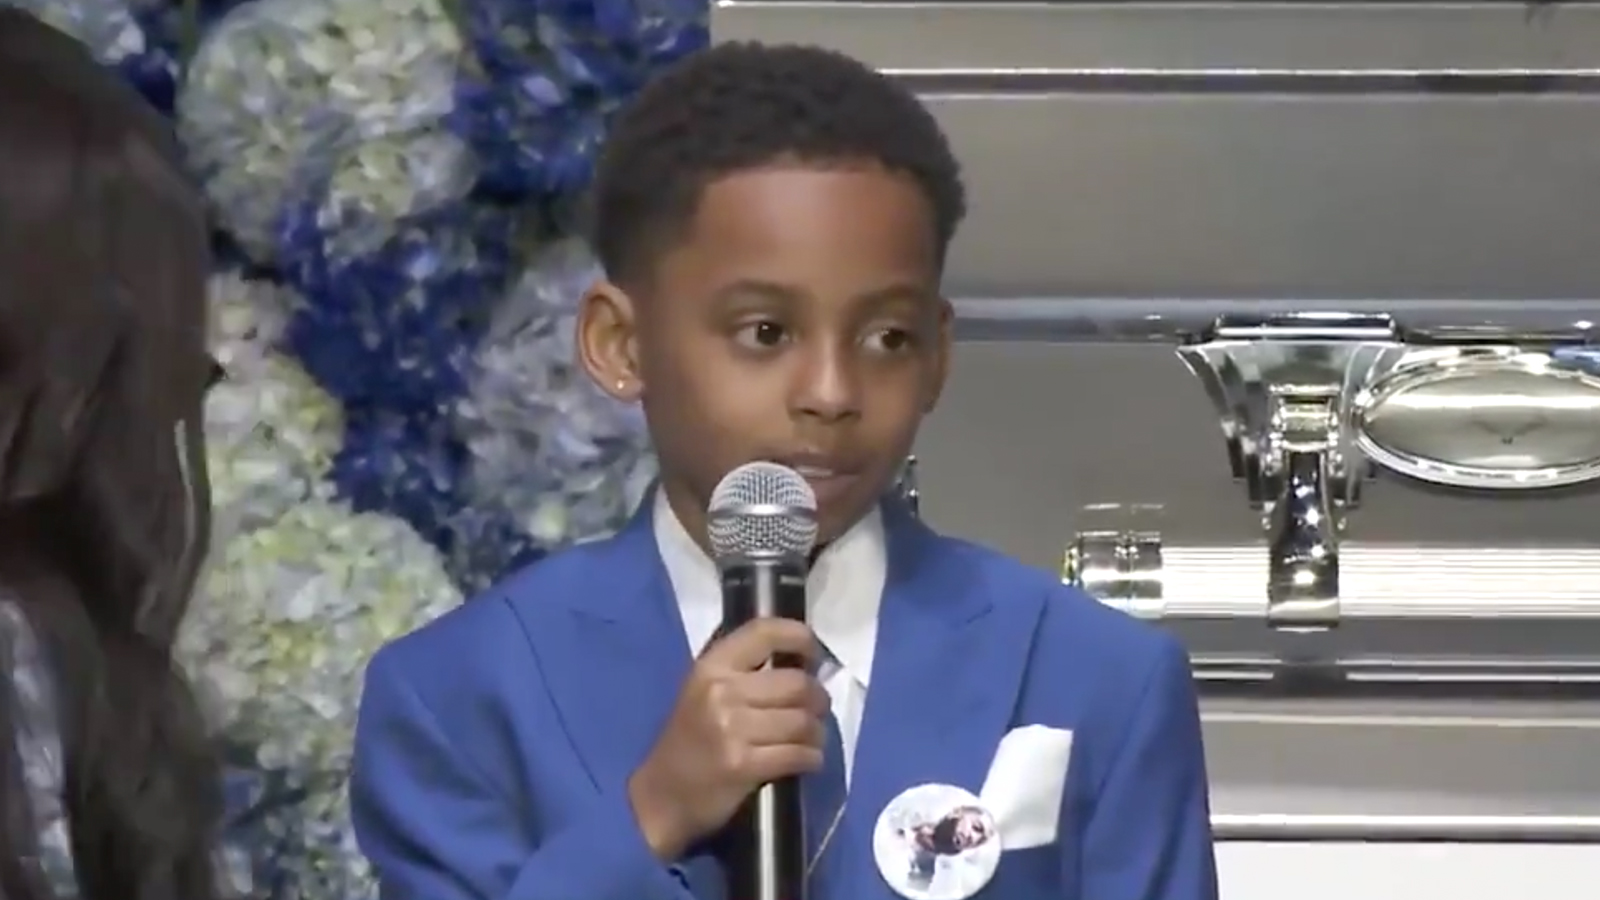 Reginae Carter Is Proud Of Her Brother, Kameron Carter, Who Spoke At Nipsey Hussle's Memorial Service - Tiny Harris Feels The Same Way - See The Video